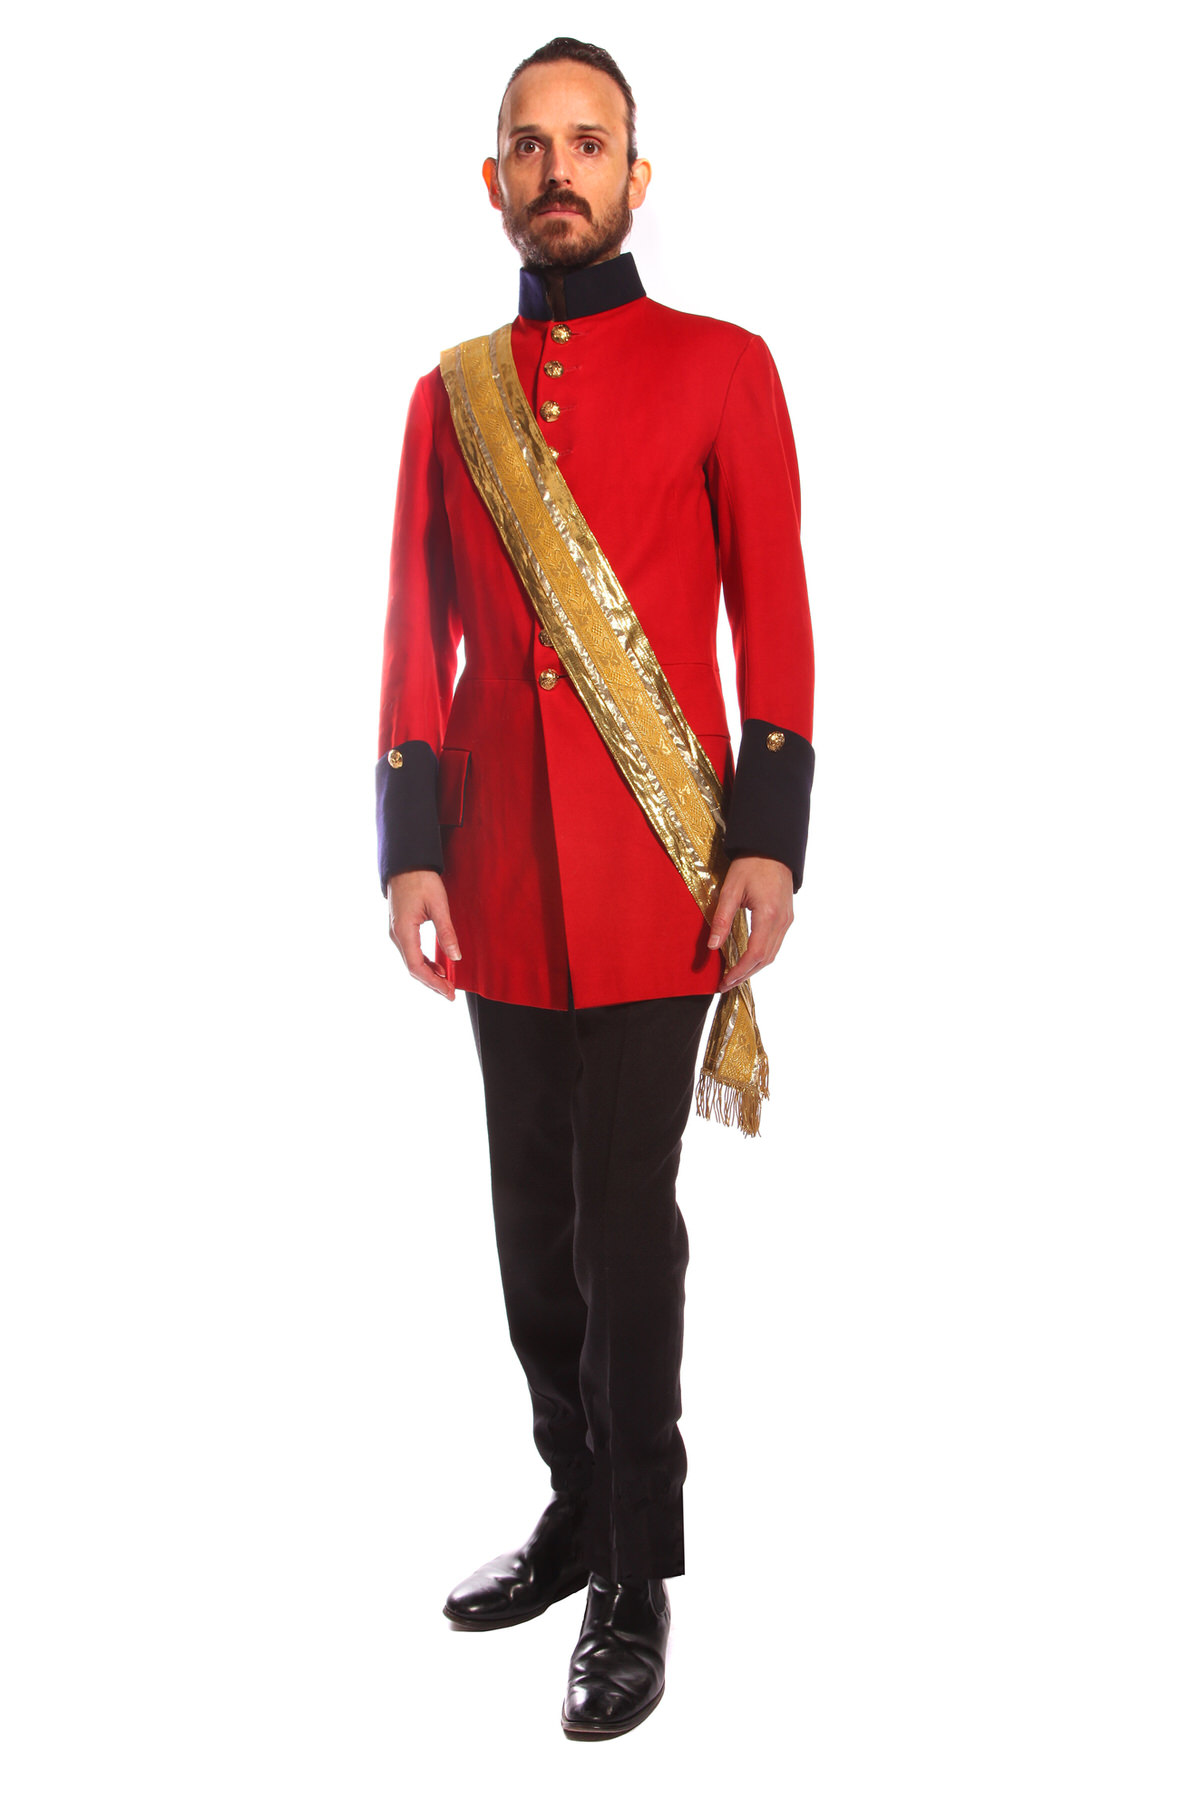 SOLDIER RED COSTUME W GOLD SASH & WOOL TROUSERS